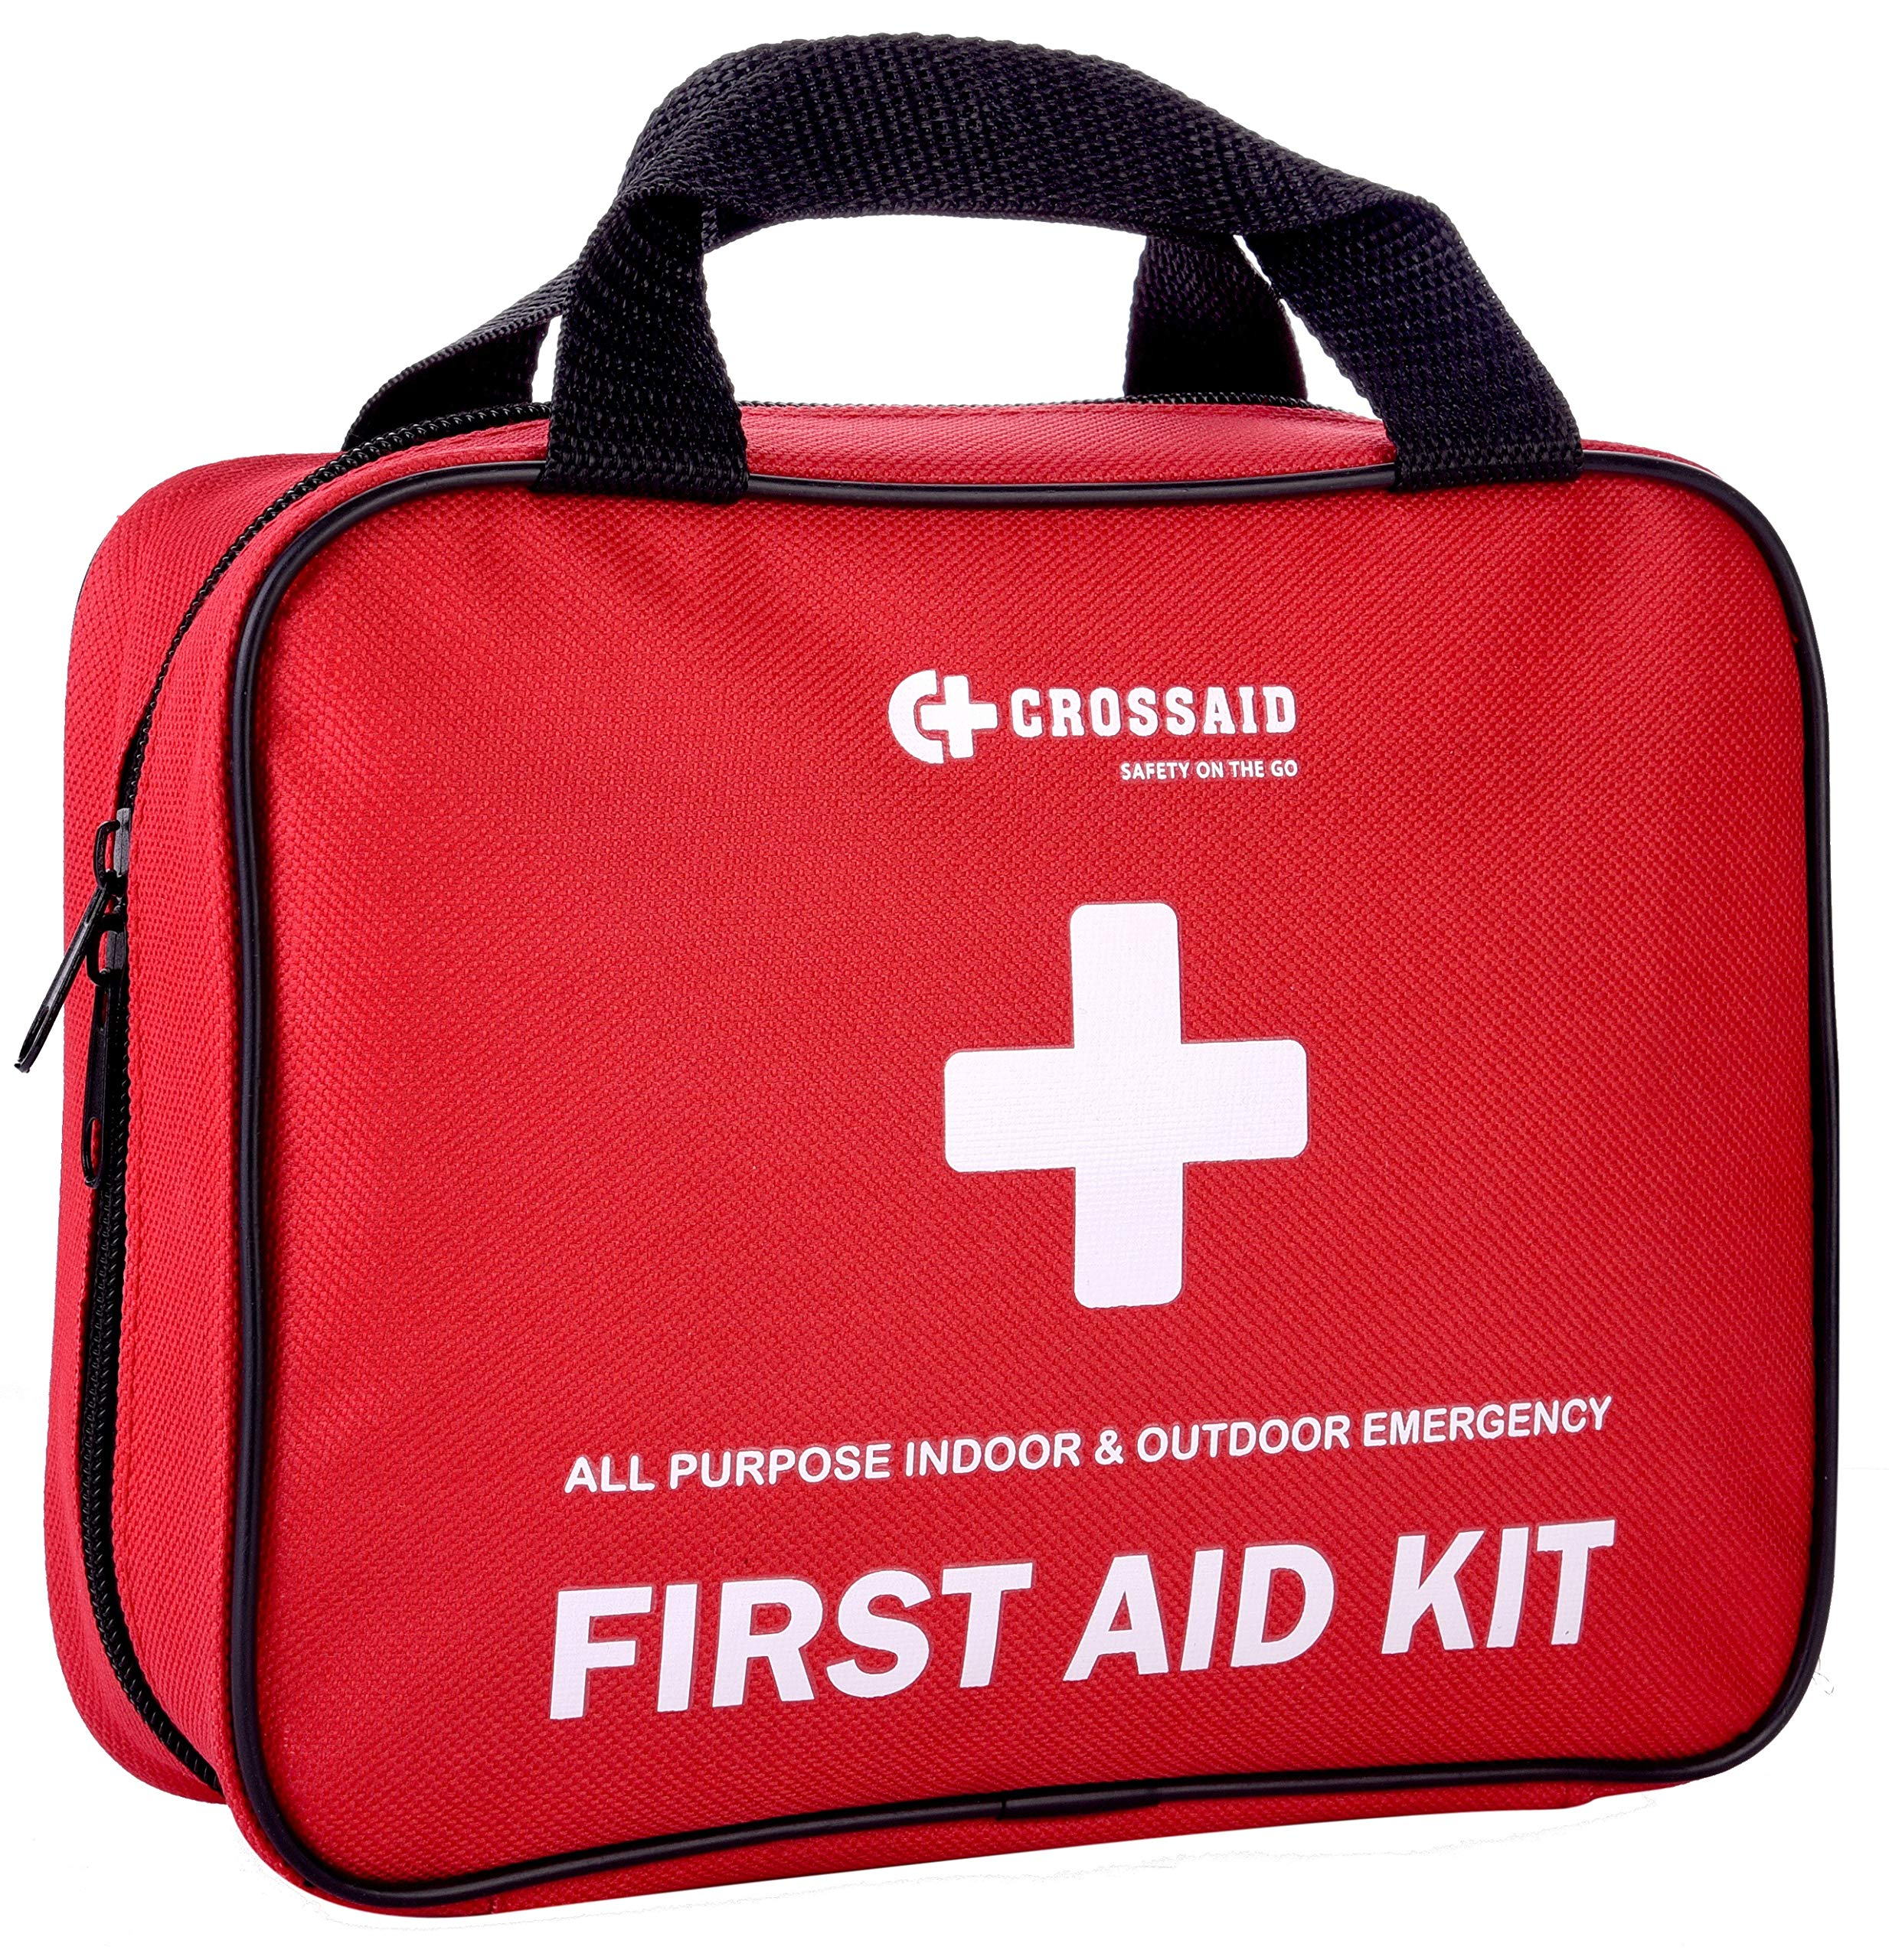 Emergency Survival First Aid Kit - 160 Pcs – Emergency kit Medical Supplies – for Car, Travel, Home, Camping, Daycare - Bonus Survival Gear + 46 pc Mini Traveling First Aid Kit